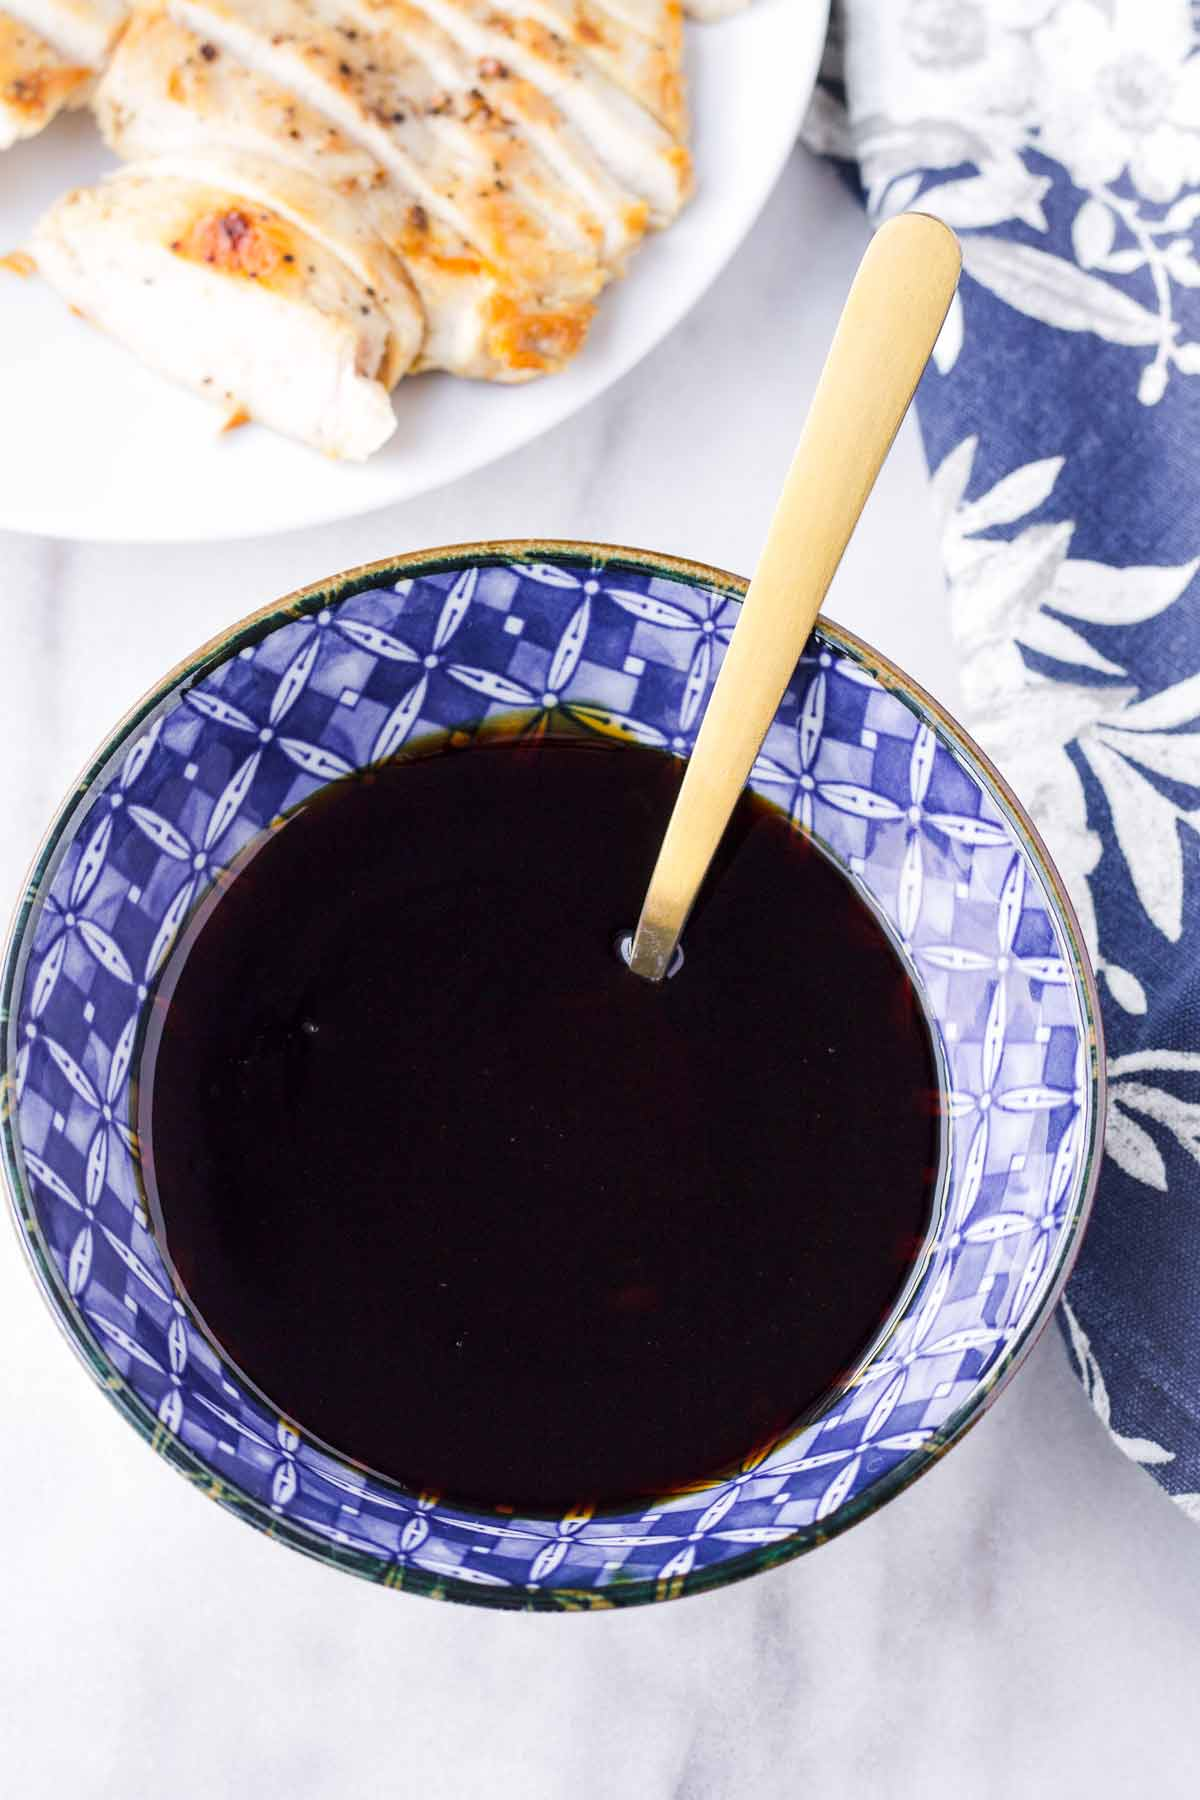 close up of authentic teriyaki sauce in a ceramic bowl